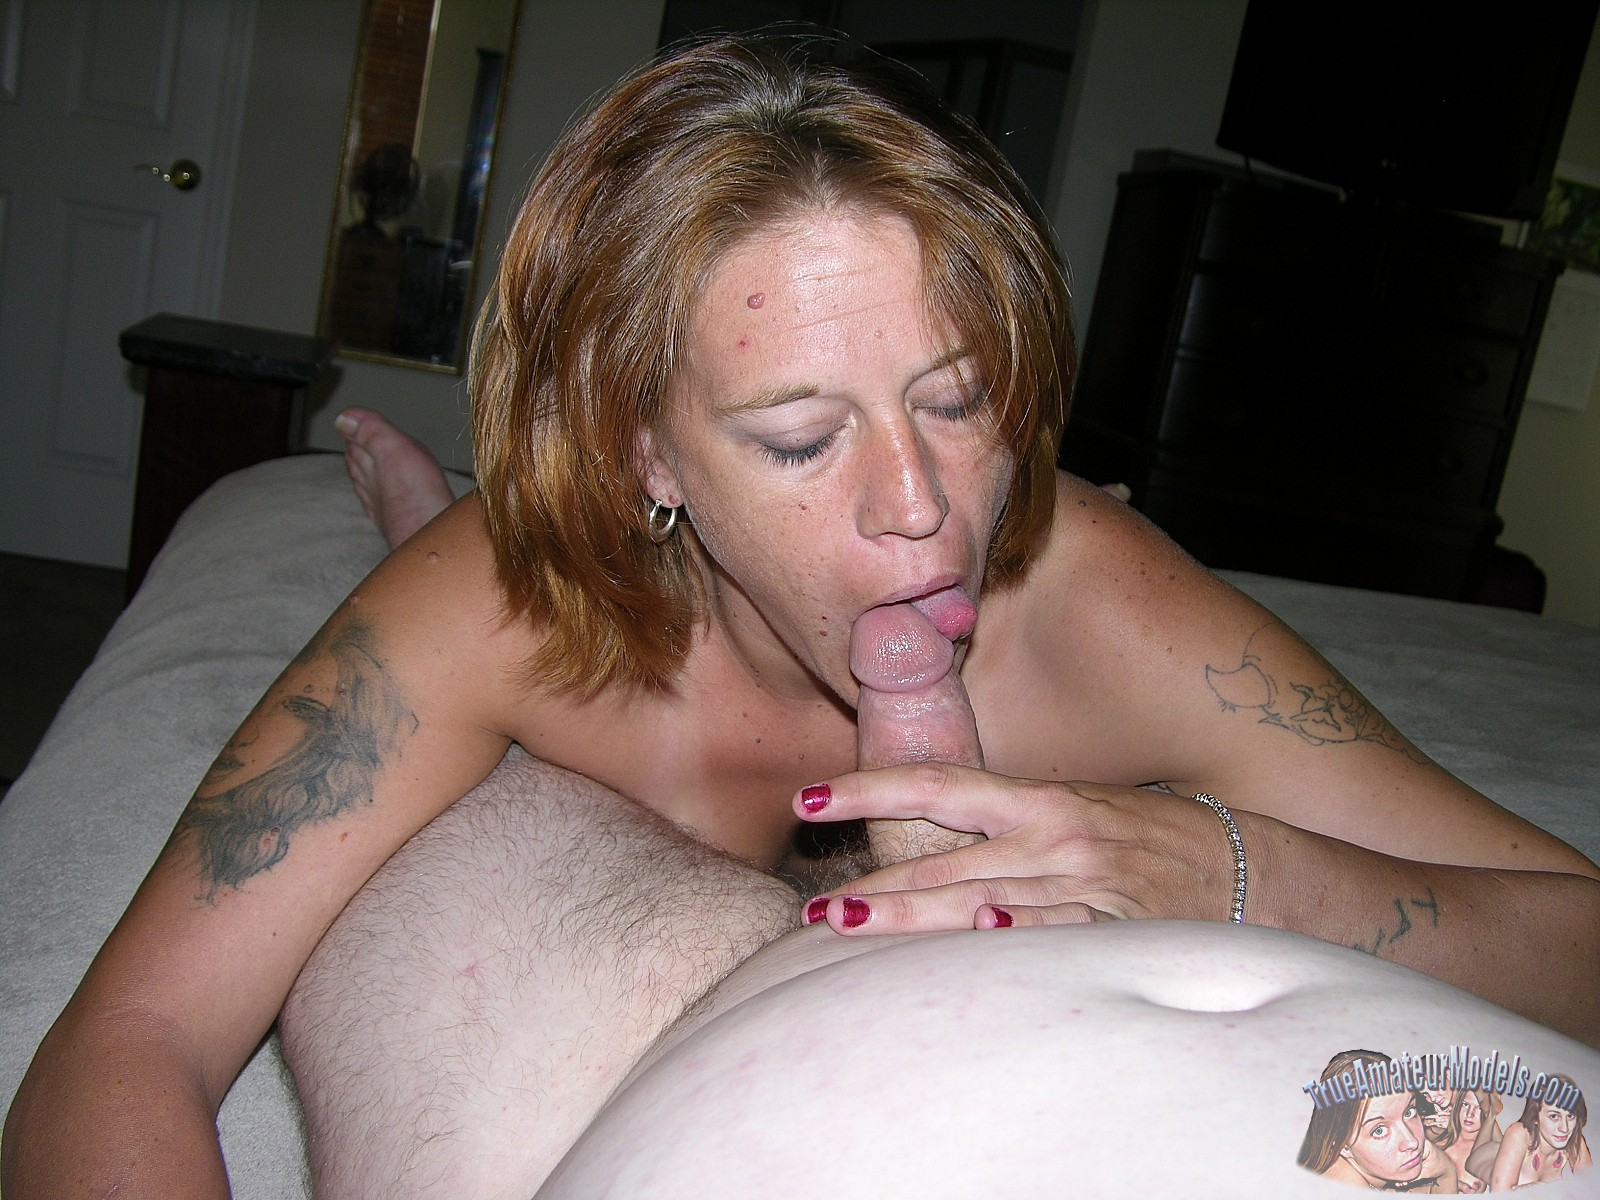 Blonde bbw removes dentures for gumjob and anal - 2 part 1